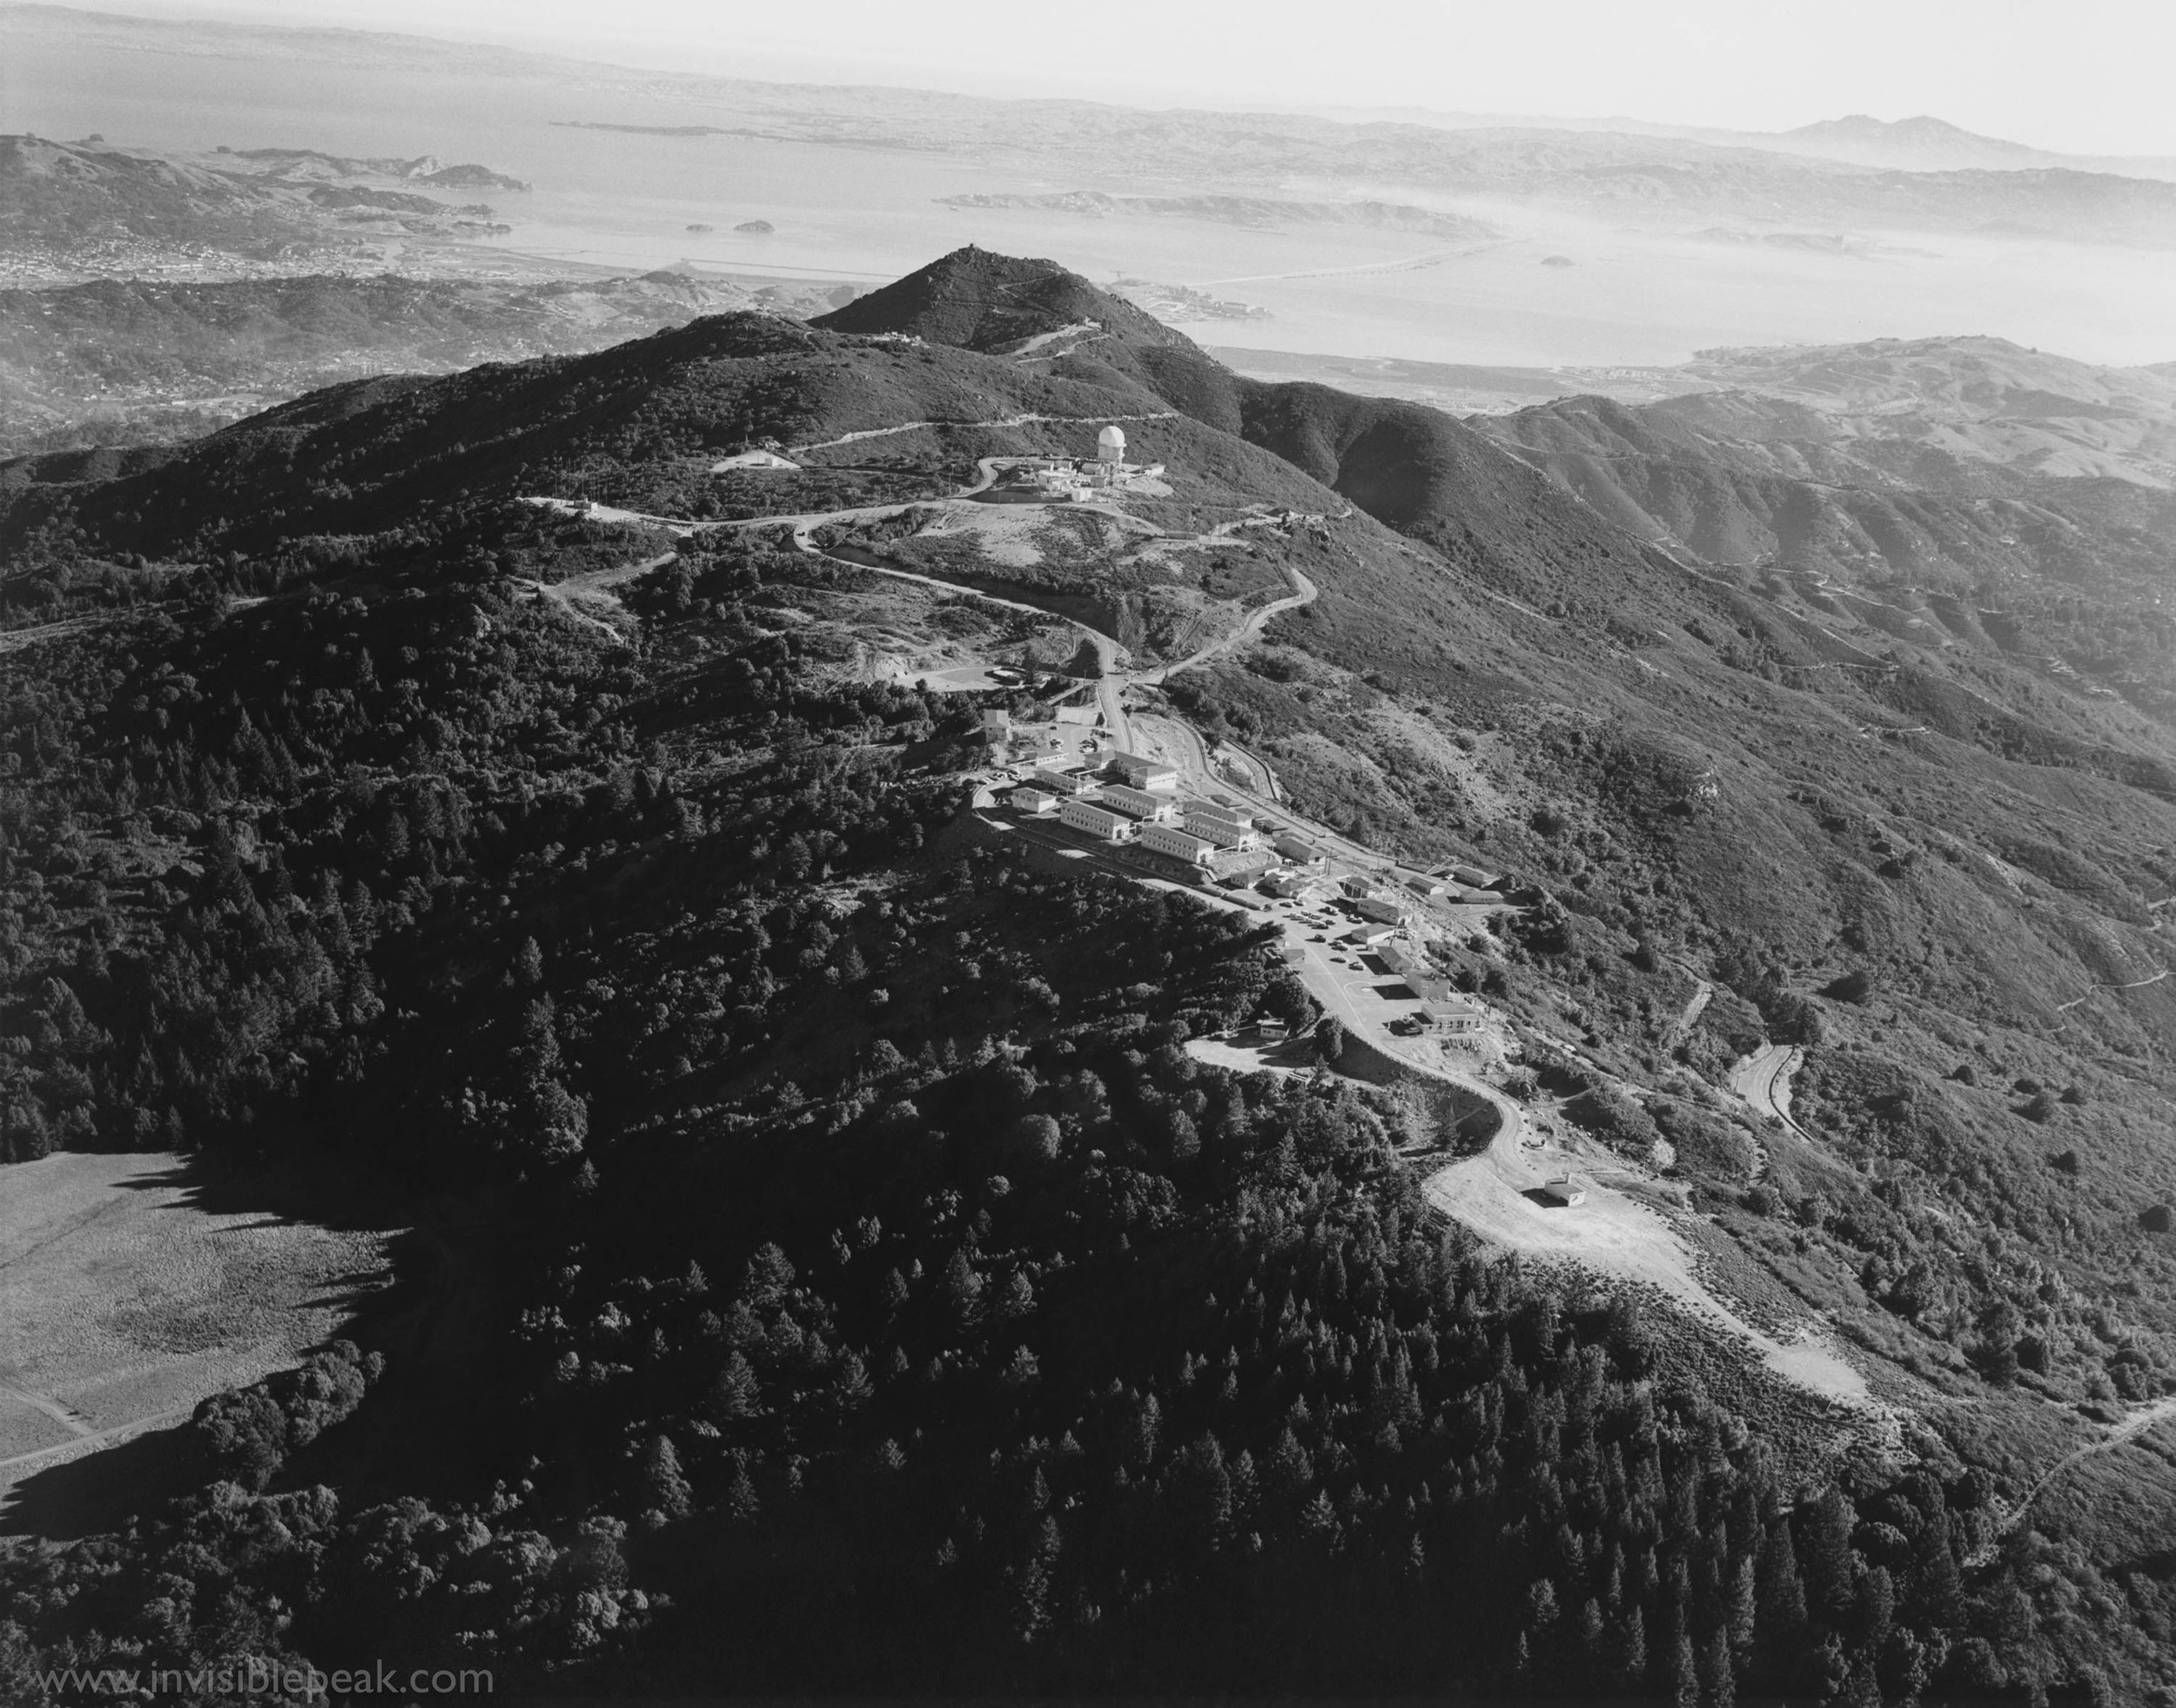 Mill Valley Air Force Station on the West Peak of Mt. Tamalpais, circa 1963.  Photographer unknown.